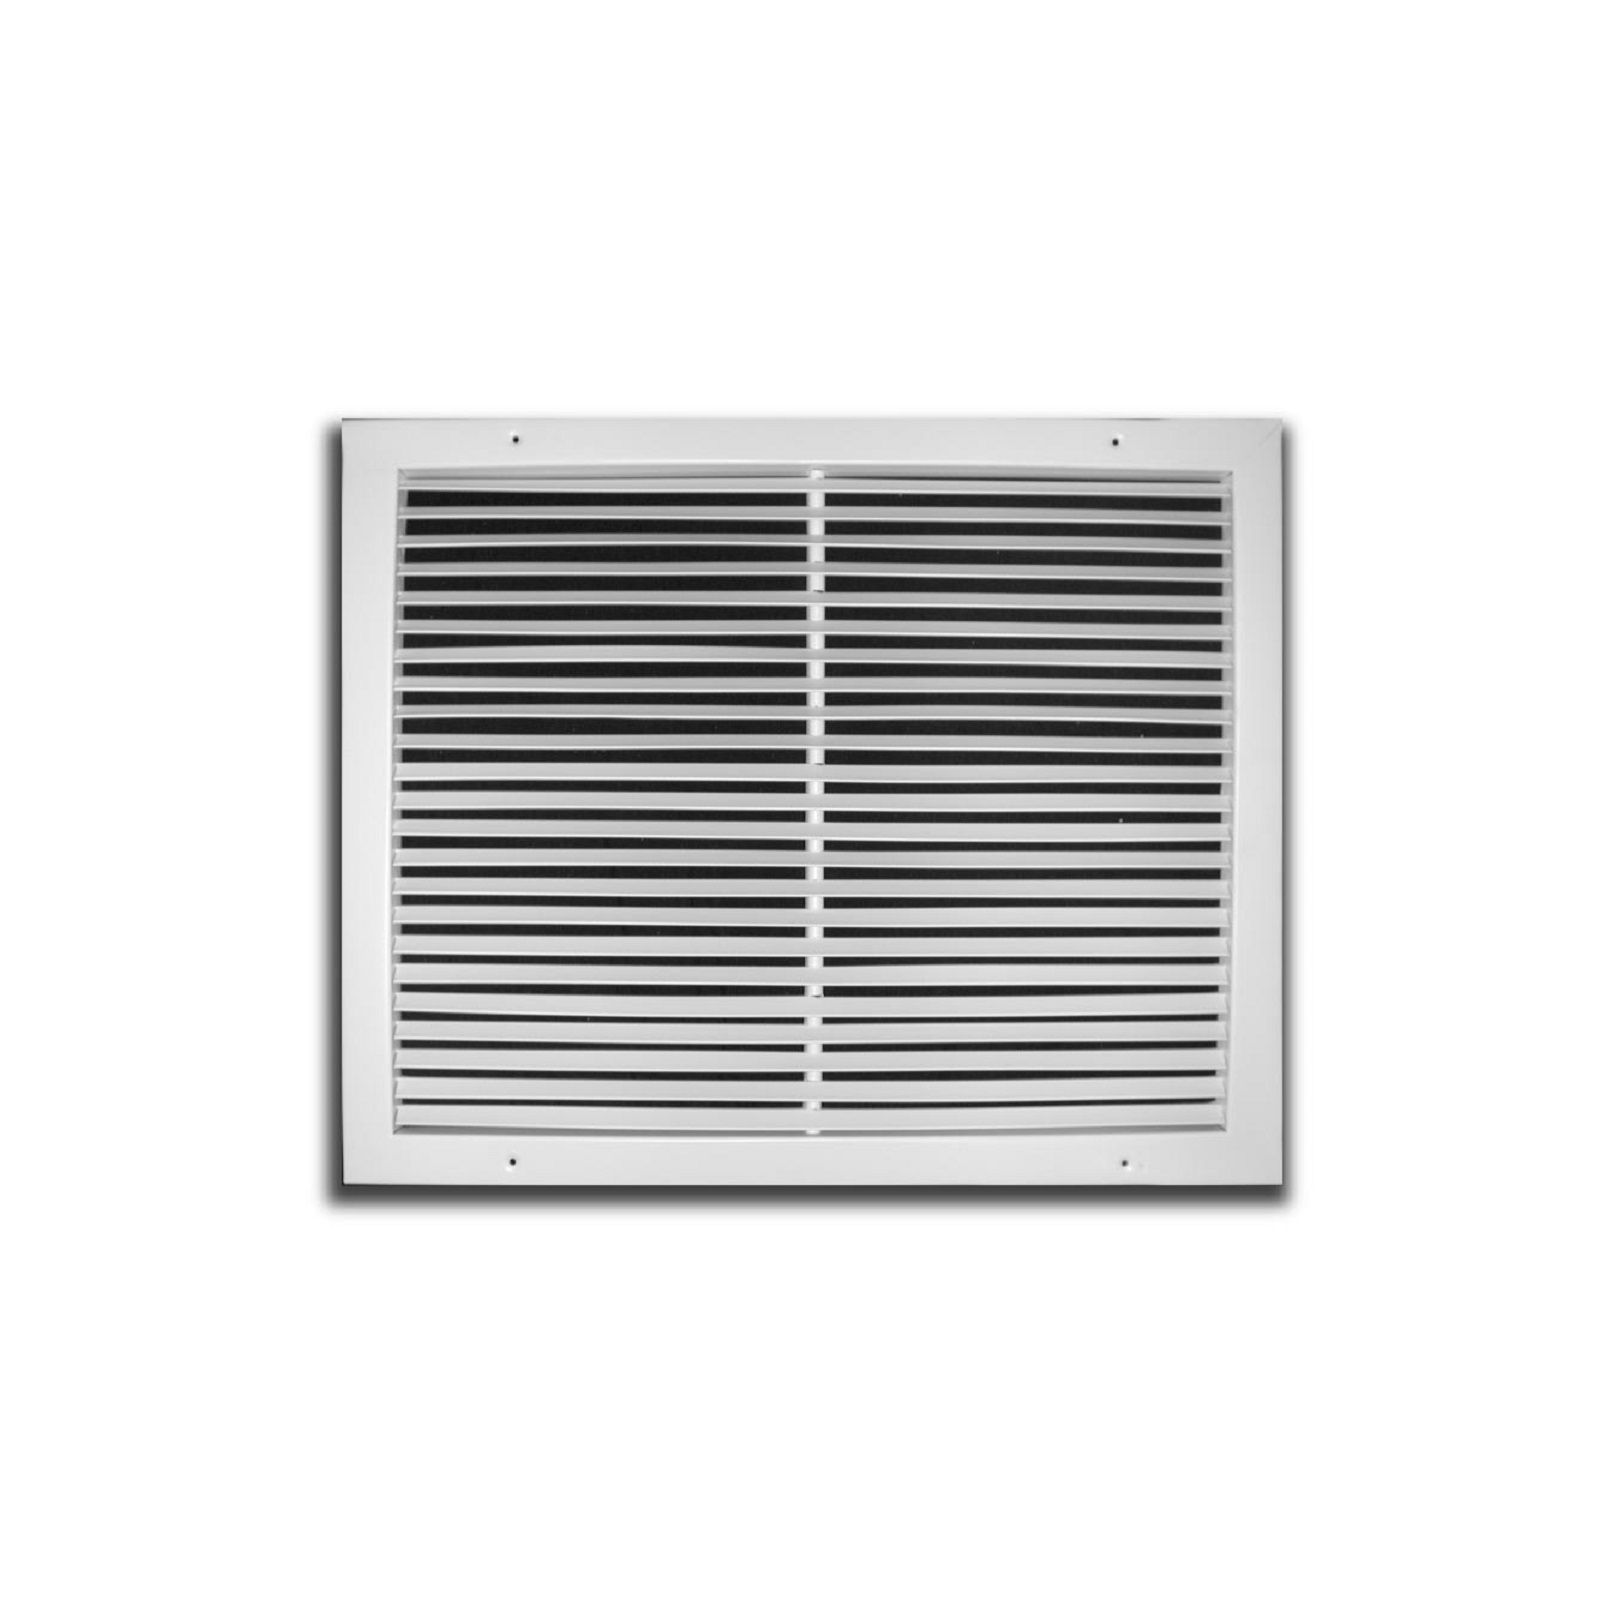 "TRUaire 270 14X06 - Steel Fixed Bar Return Air Grille, White, 14"" X 06"""